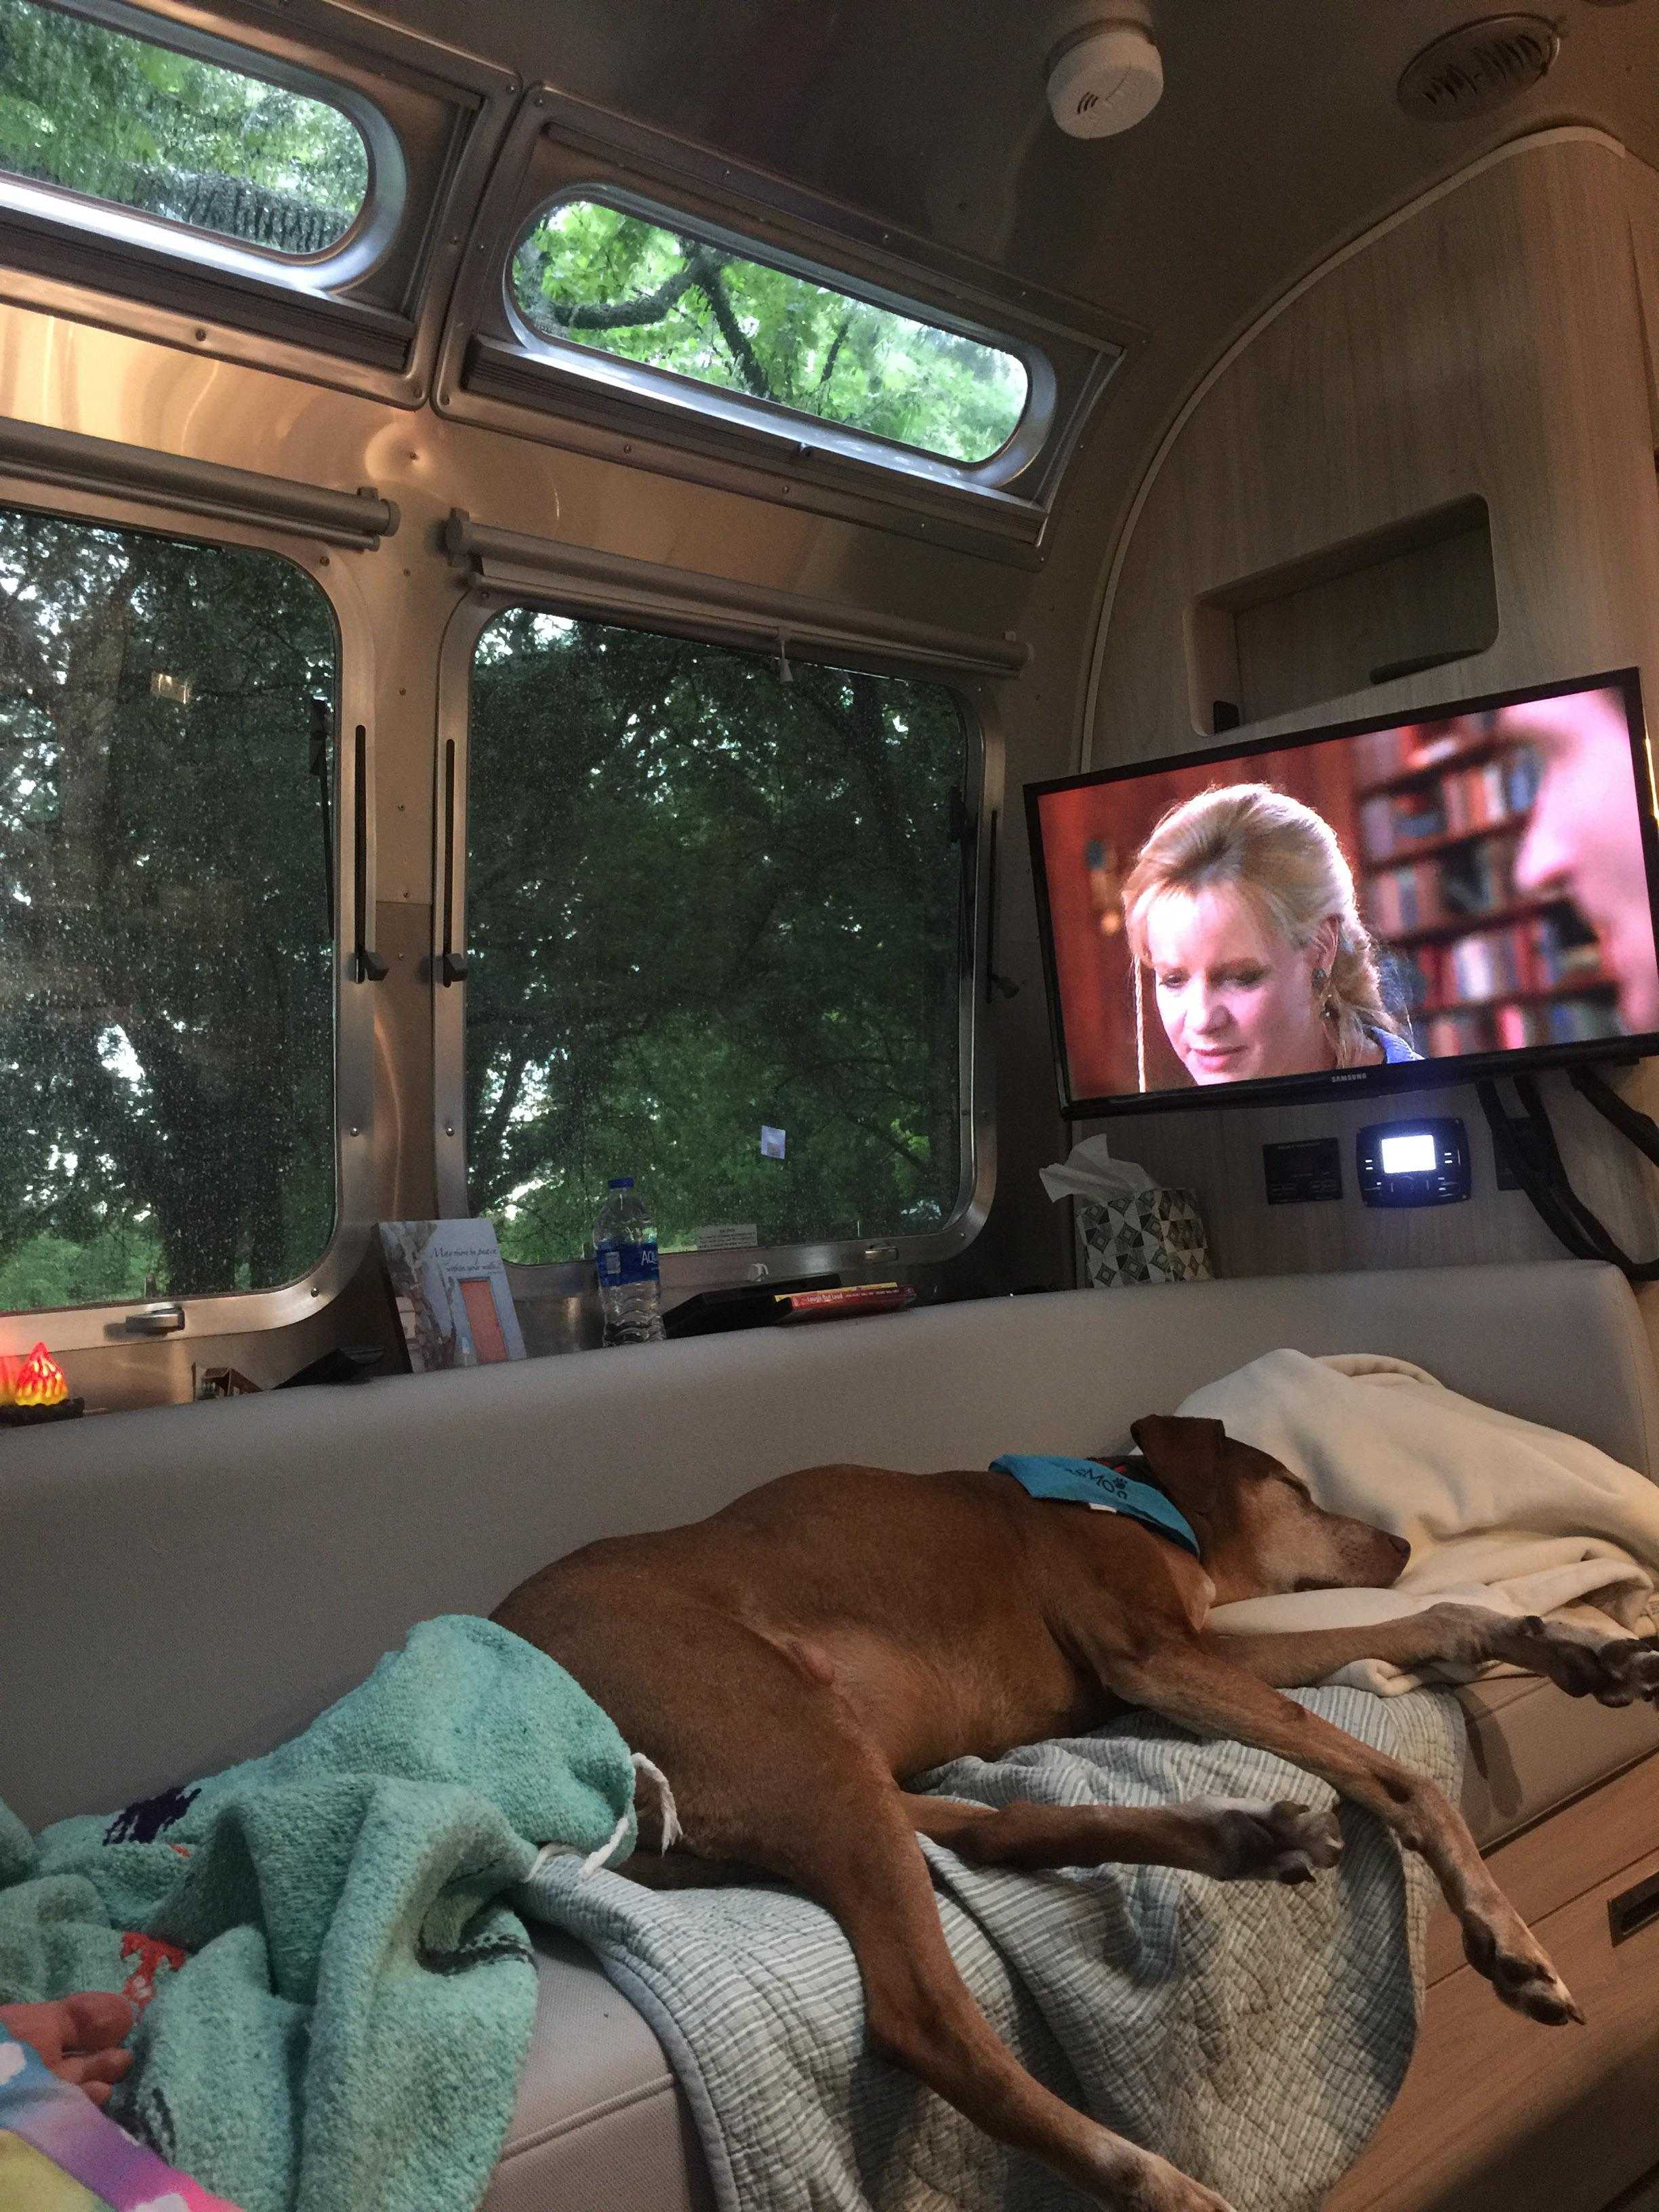 This dog sleeping on the couch, in an RV, on a rainy day